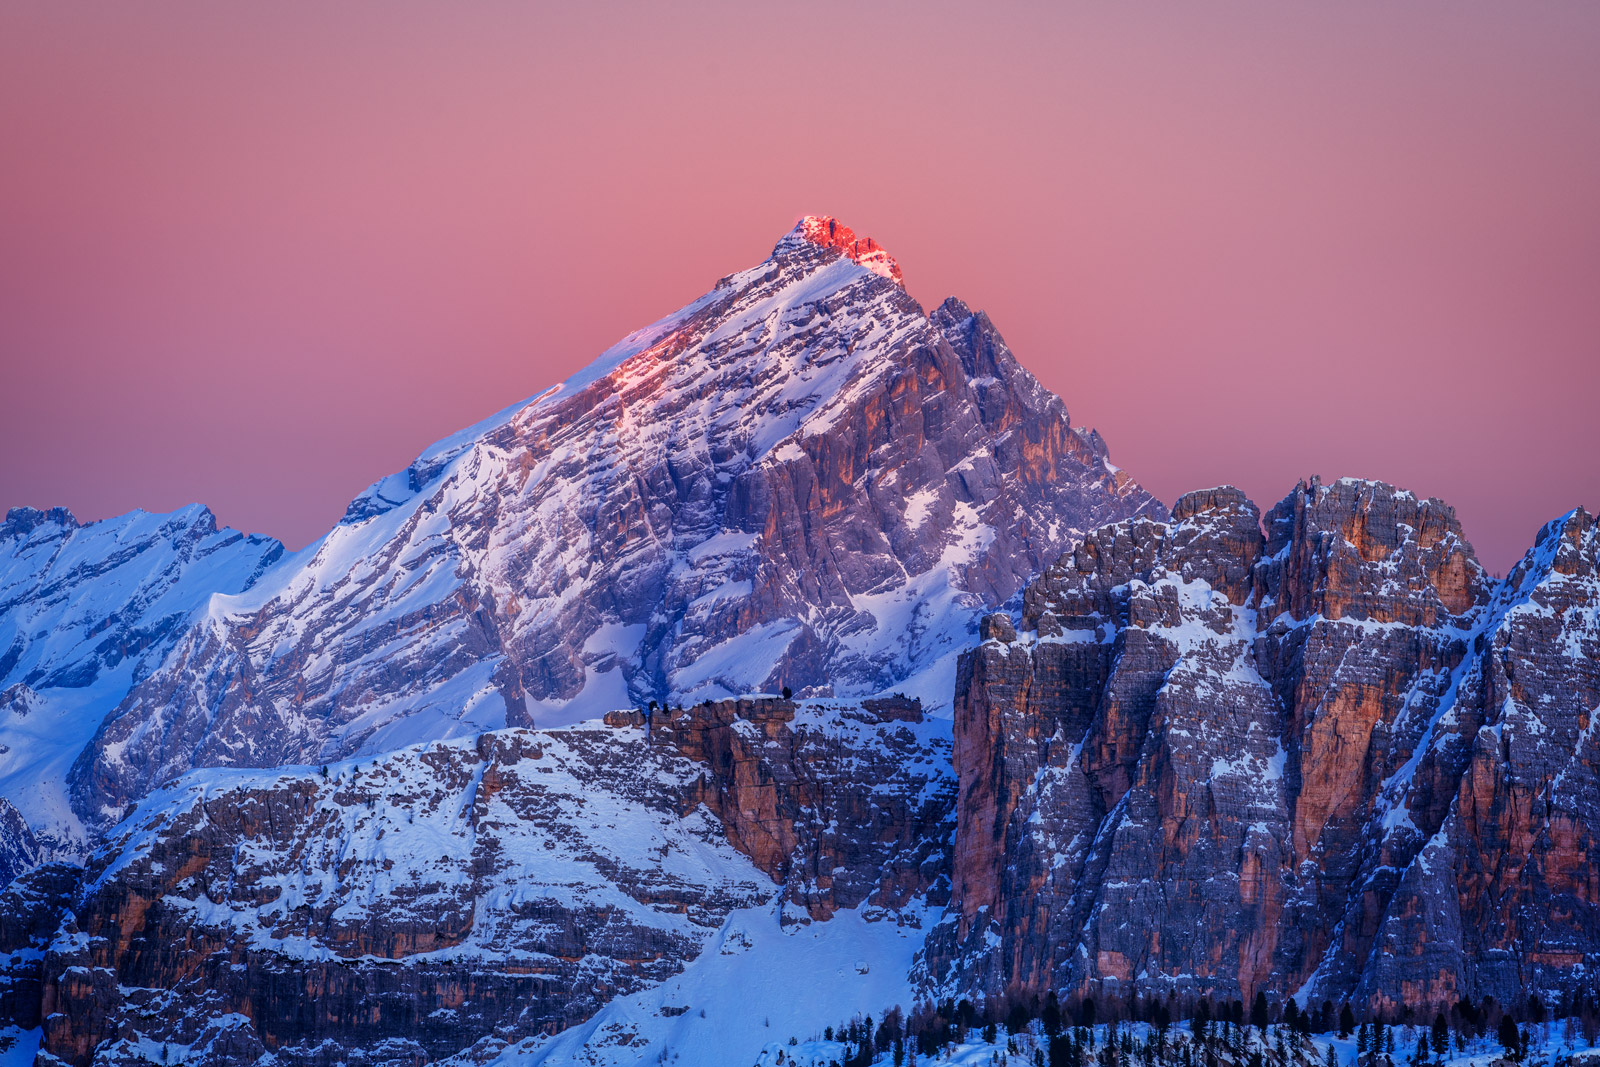 Italy, Dolomite, Mountains, Sunrise, Snow, Sandstone